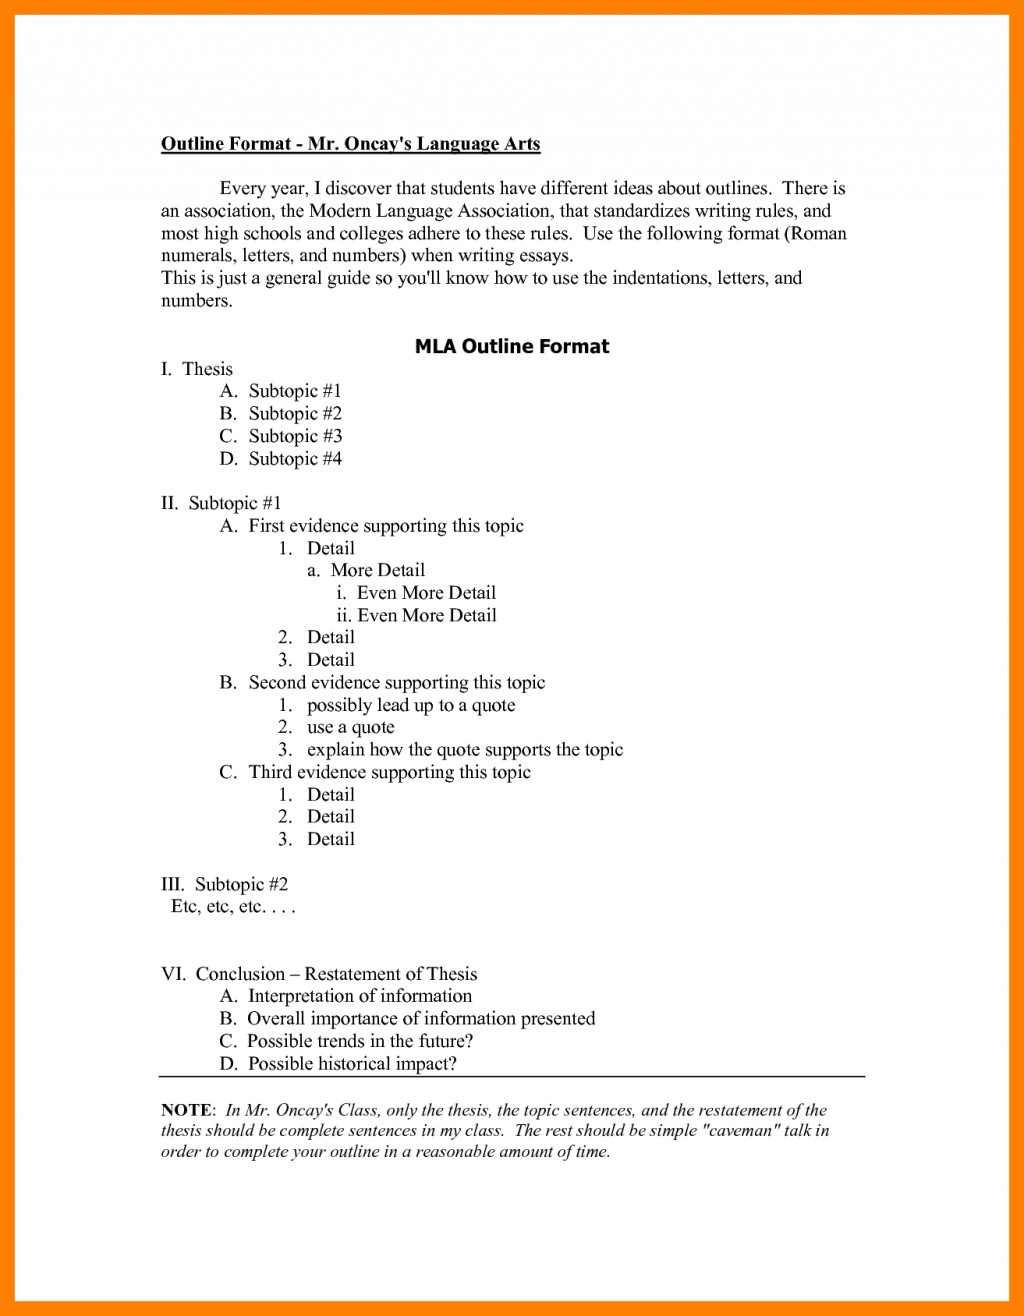 014 High School Research Papers Outline Format Mla Paper Example Of Examples Impressive Rubric Assignment Sheet Topics Pdf Large